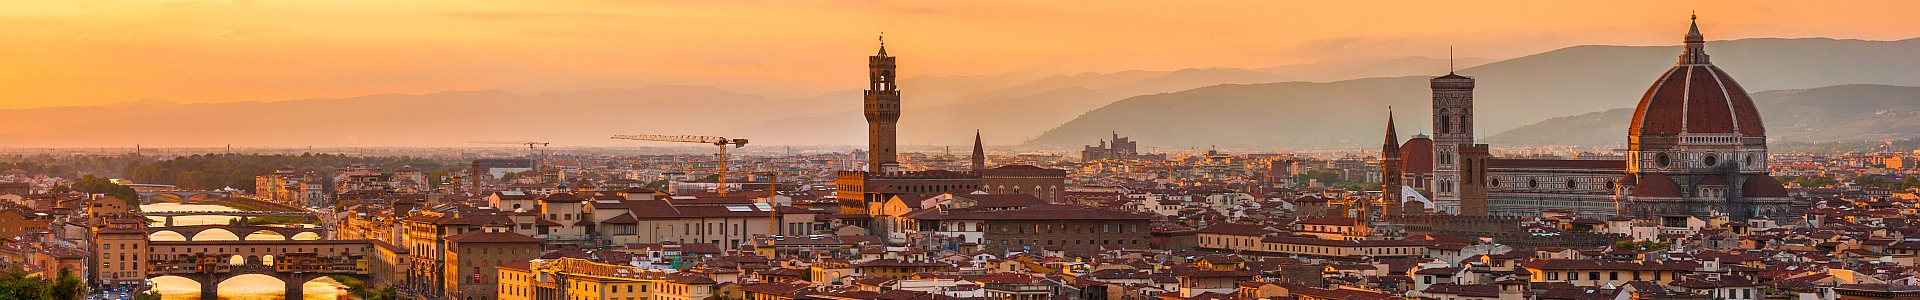 florence_ss_124543114